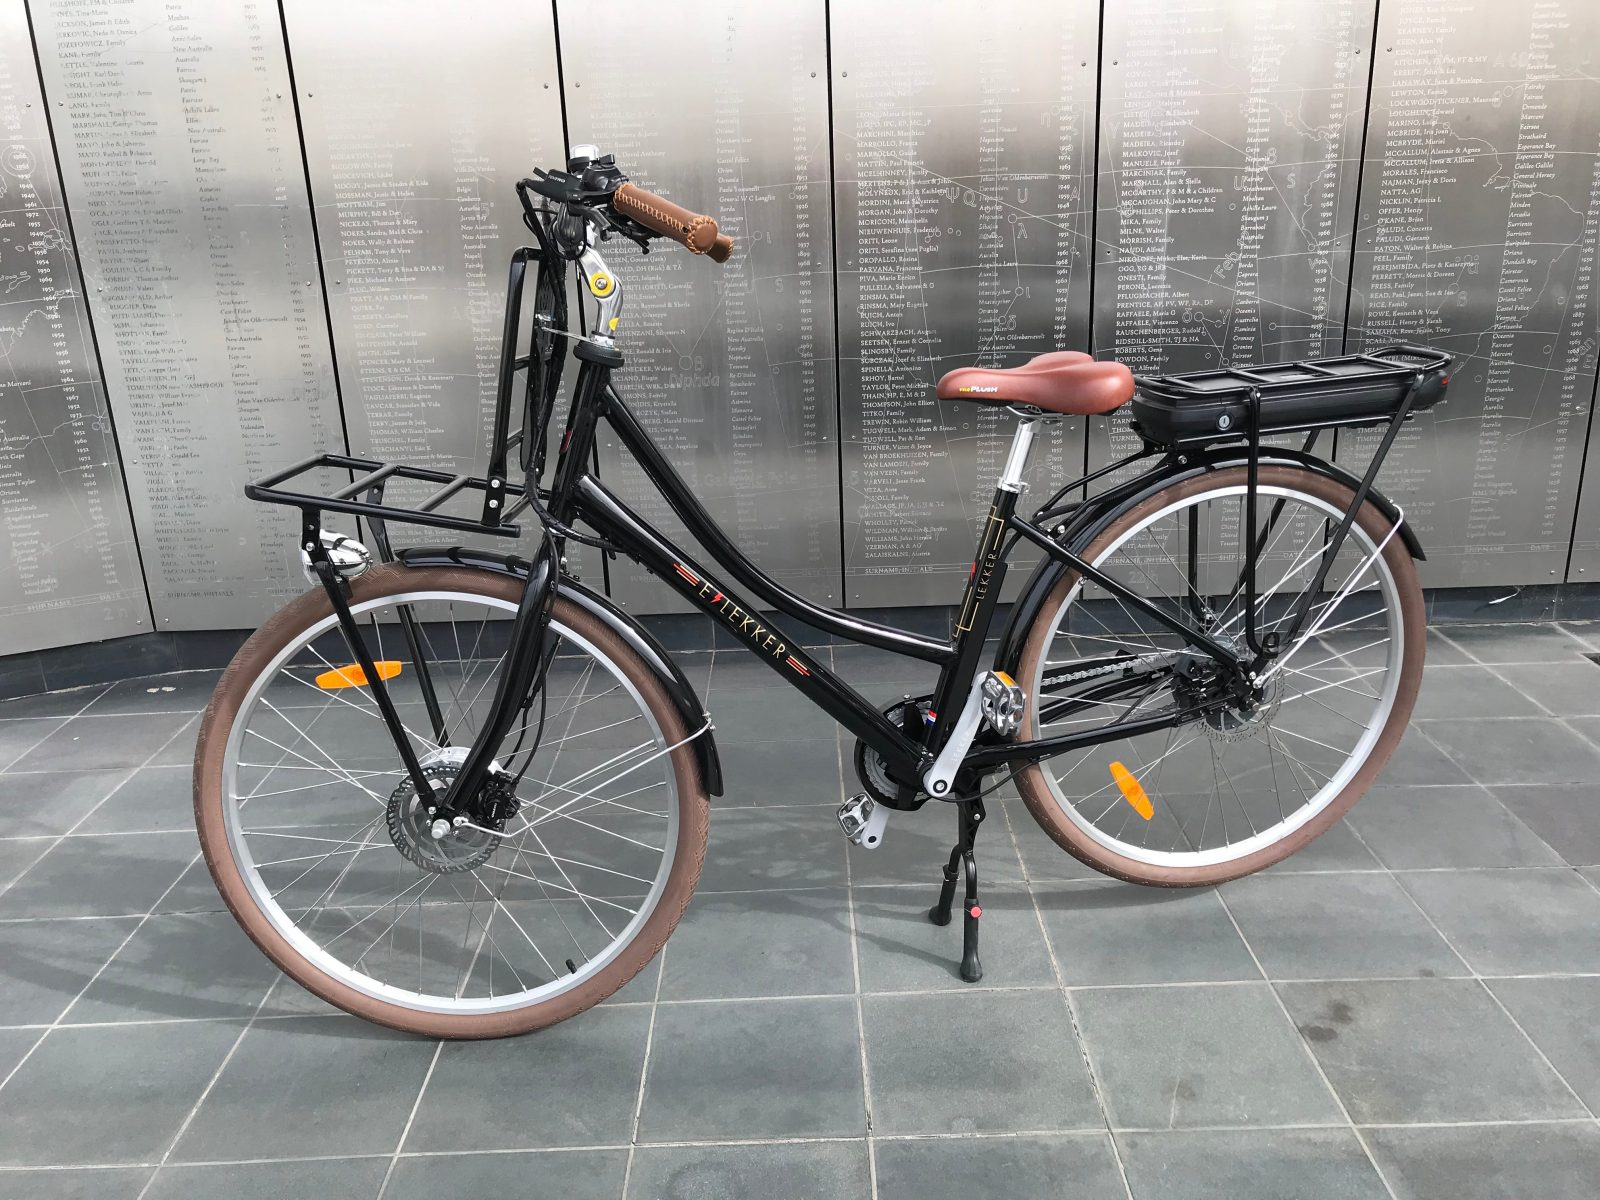 The Lekker Jourdan is a comfortable and easy ride to enjoy exploring the many picturesque areas